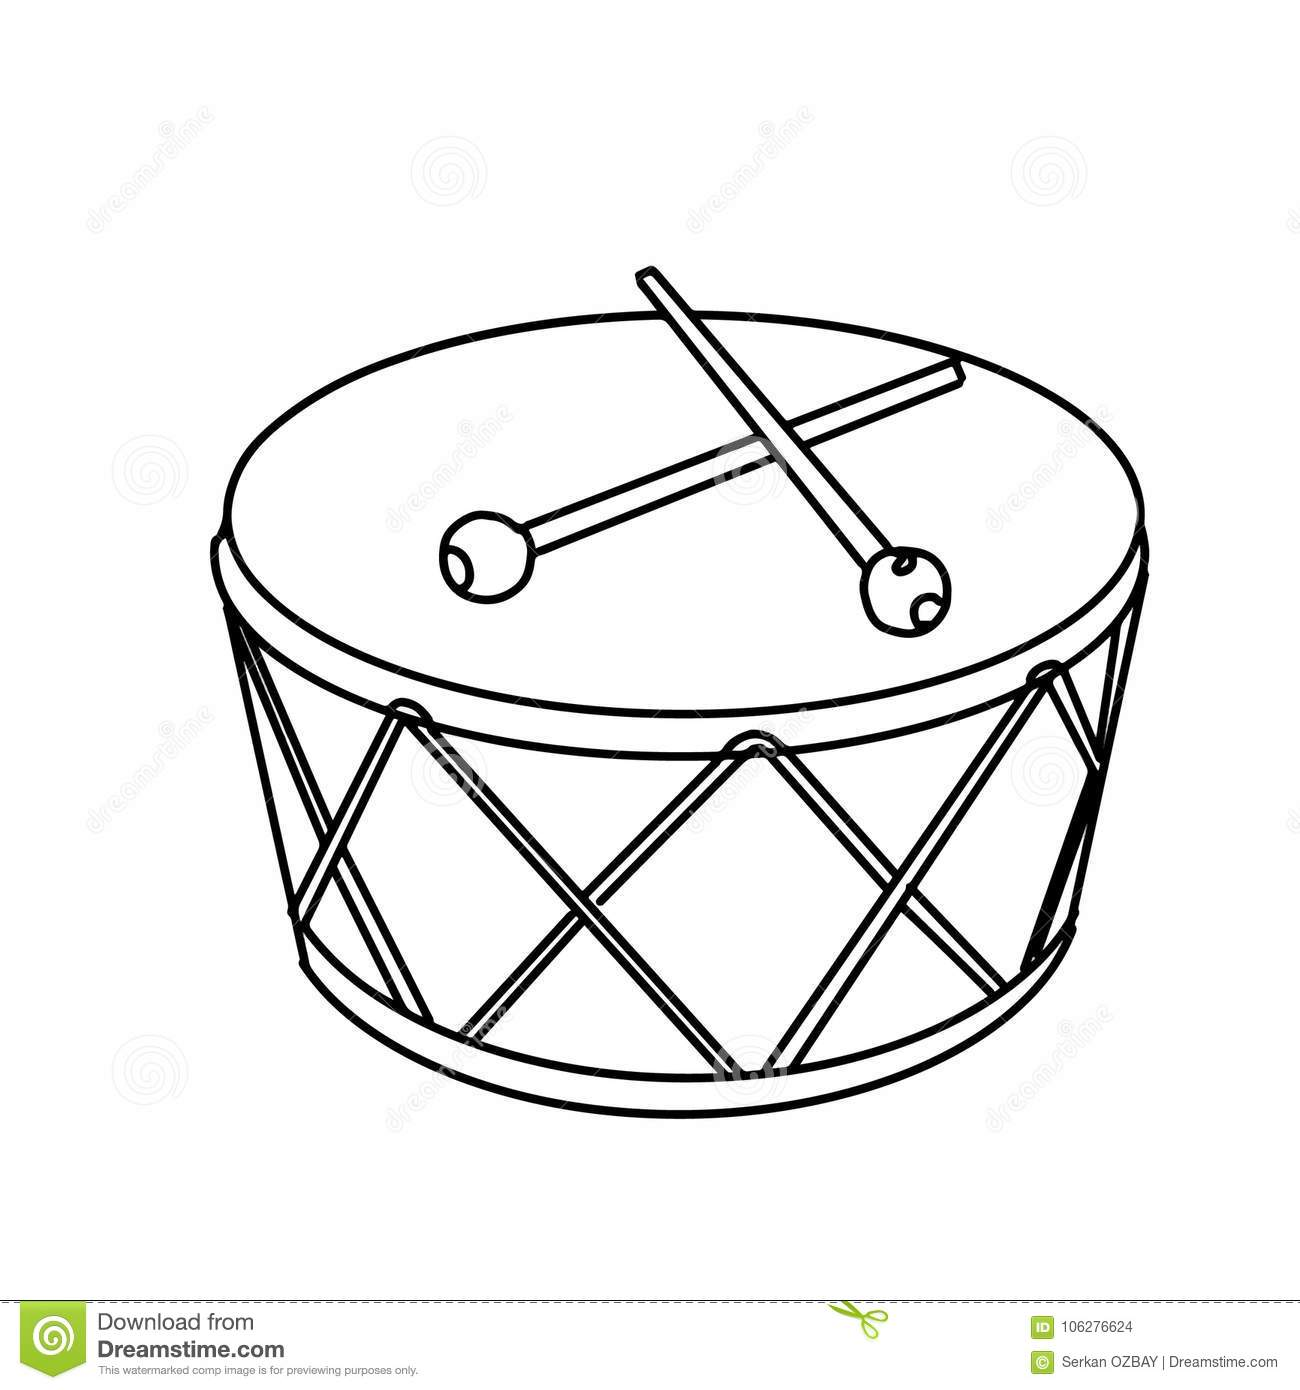 Realistic Drum Illusration Drawing Battery Coloring